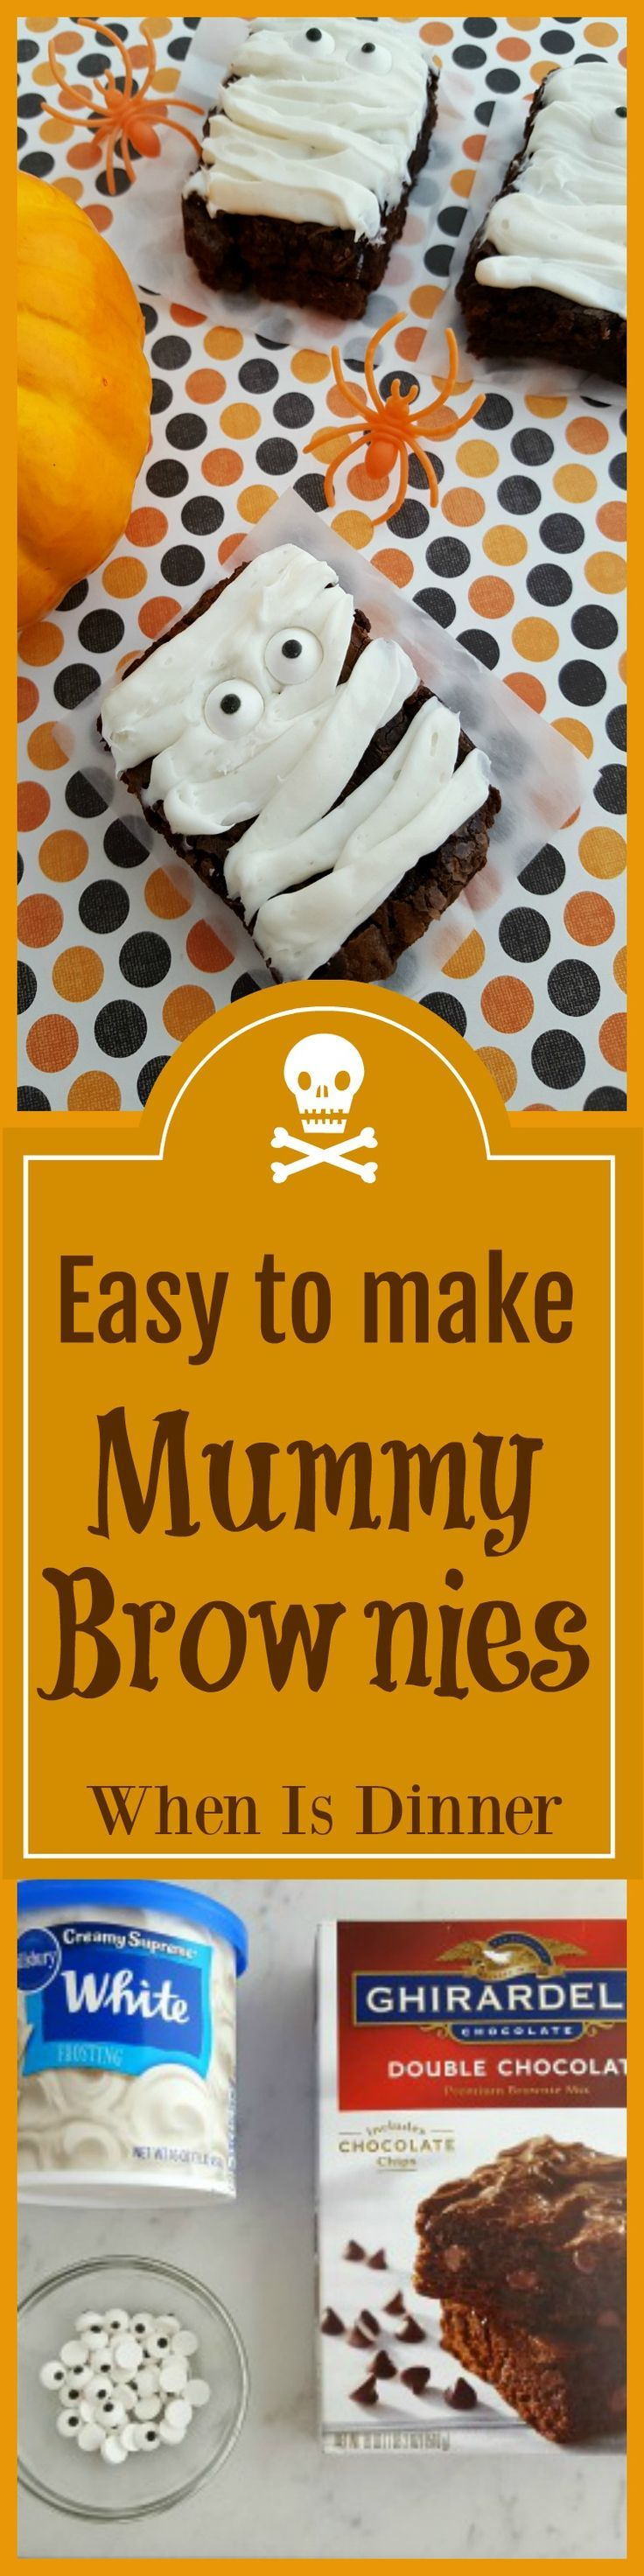 These fun Mummy Brownies are a great Halloween Party Snack Idea! They're quick & easy to make and would be perfect for kids to decorate themselves. via @Kdkaren